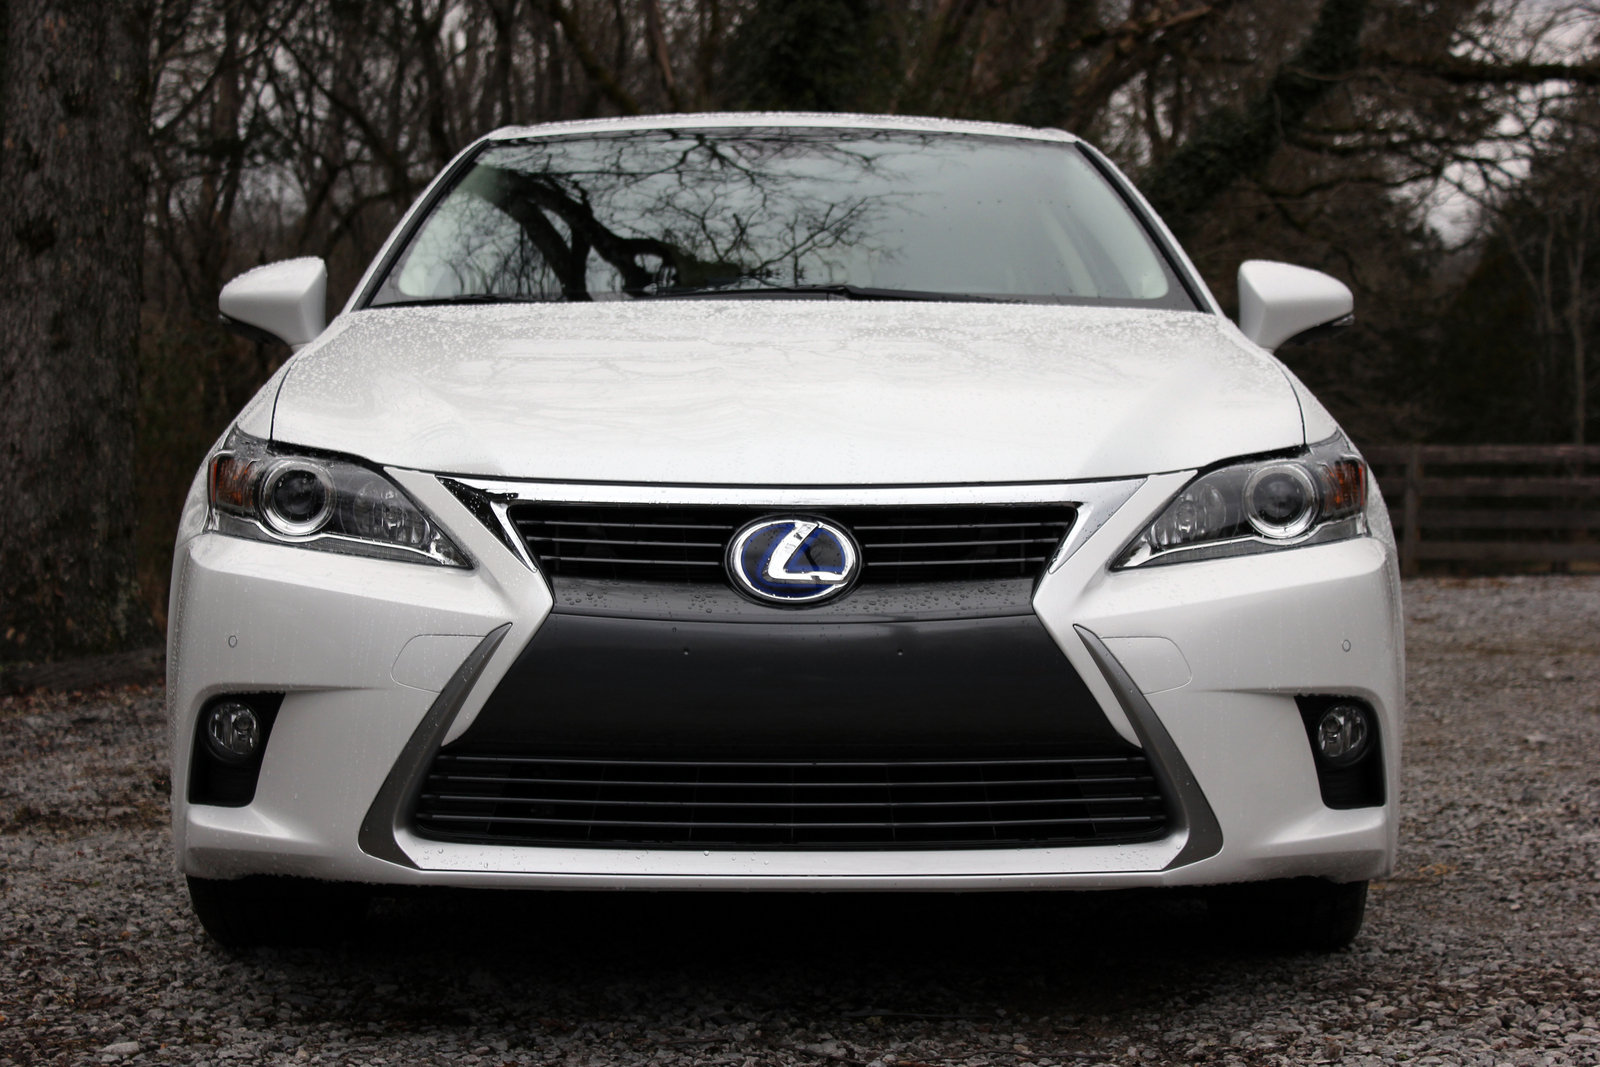 2015 lexus ct 200h driven picture 615167 car review top speed. Black Bedroom Furniture Sets. Home Design Ideas